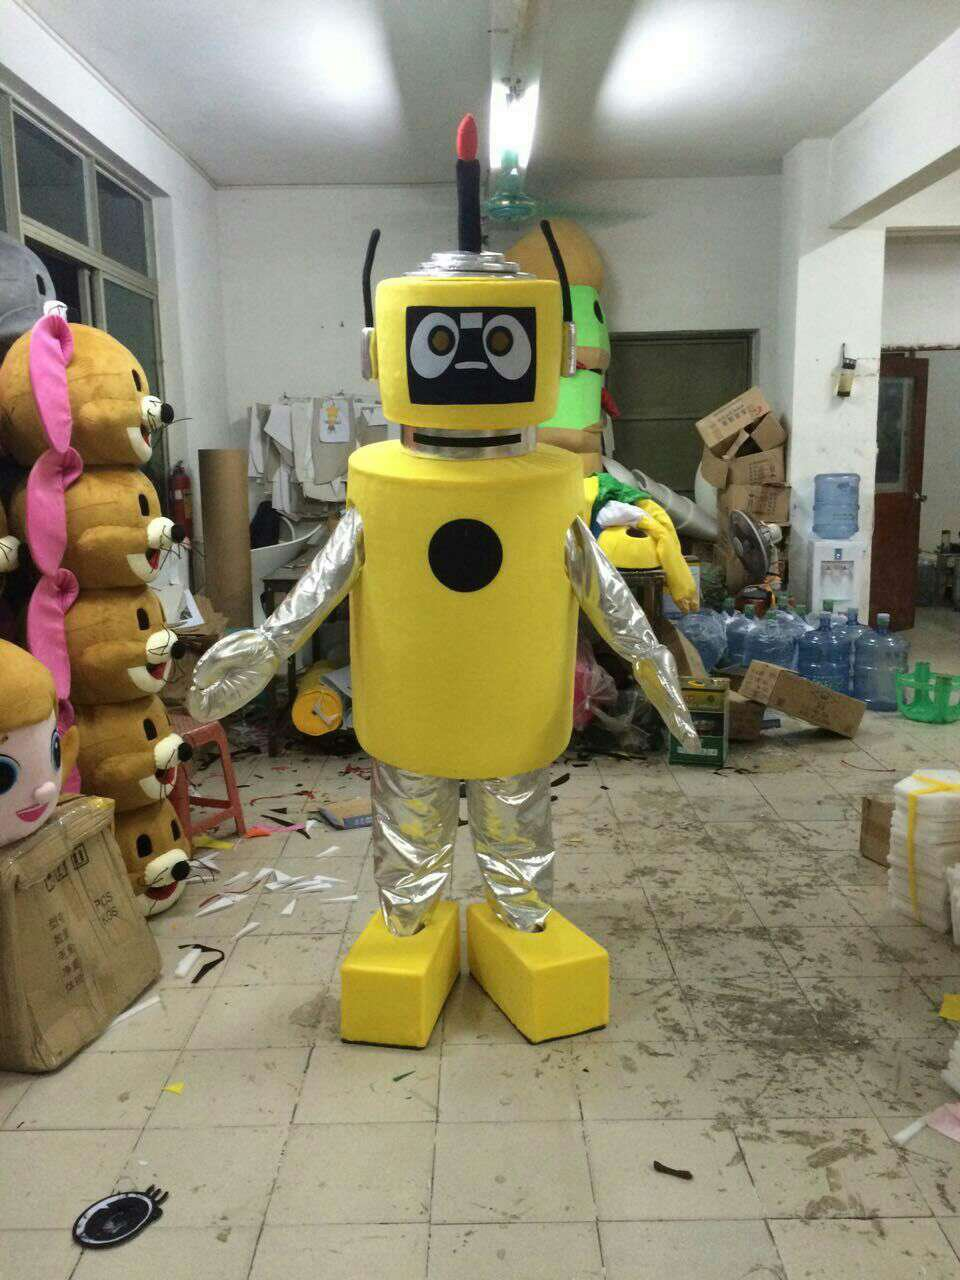 Cartoon Doll Clothing Cartoon Costumes Cartoon Doll Clothing Cartoon Show Clothing Robot Mascot Costume